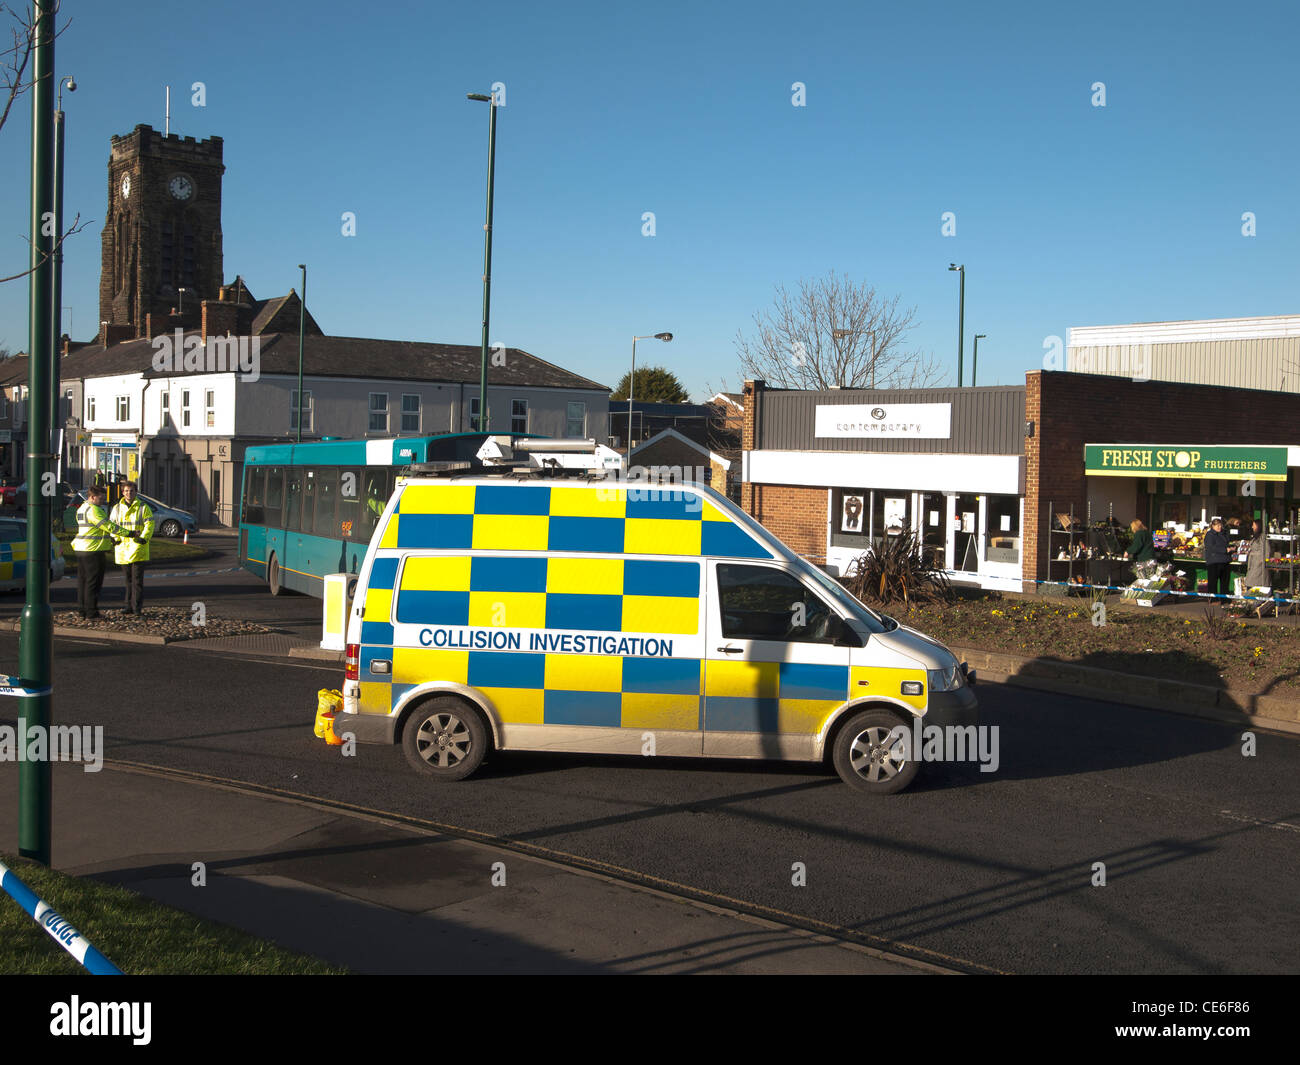 Police Collision Investigation van at the scene of a road traffic ...